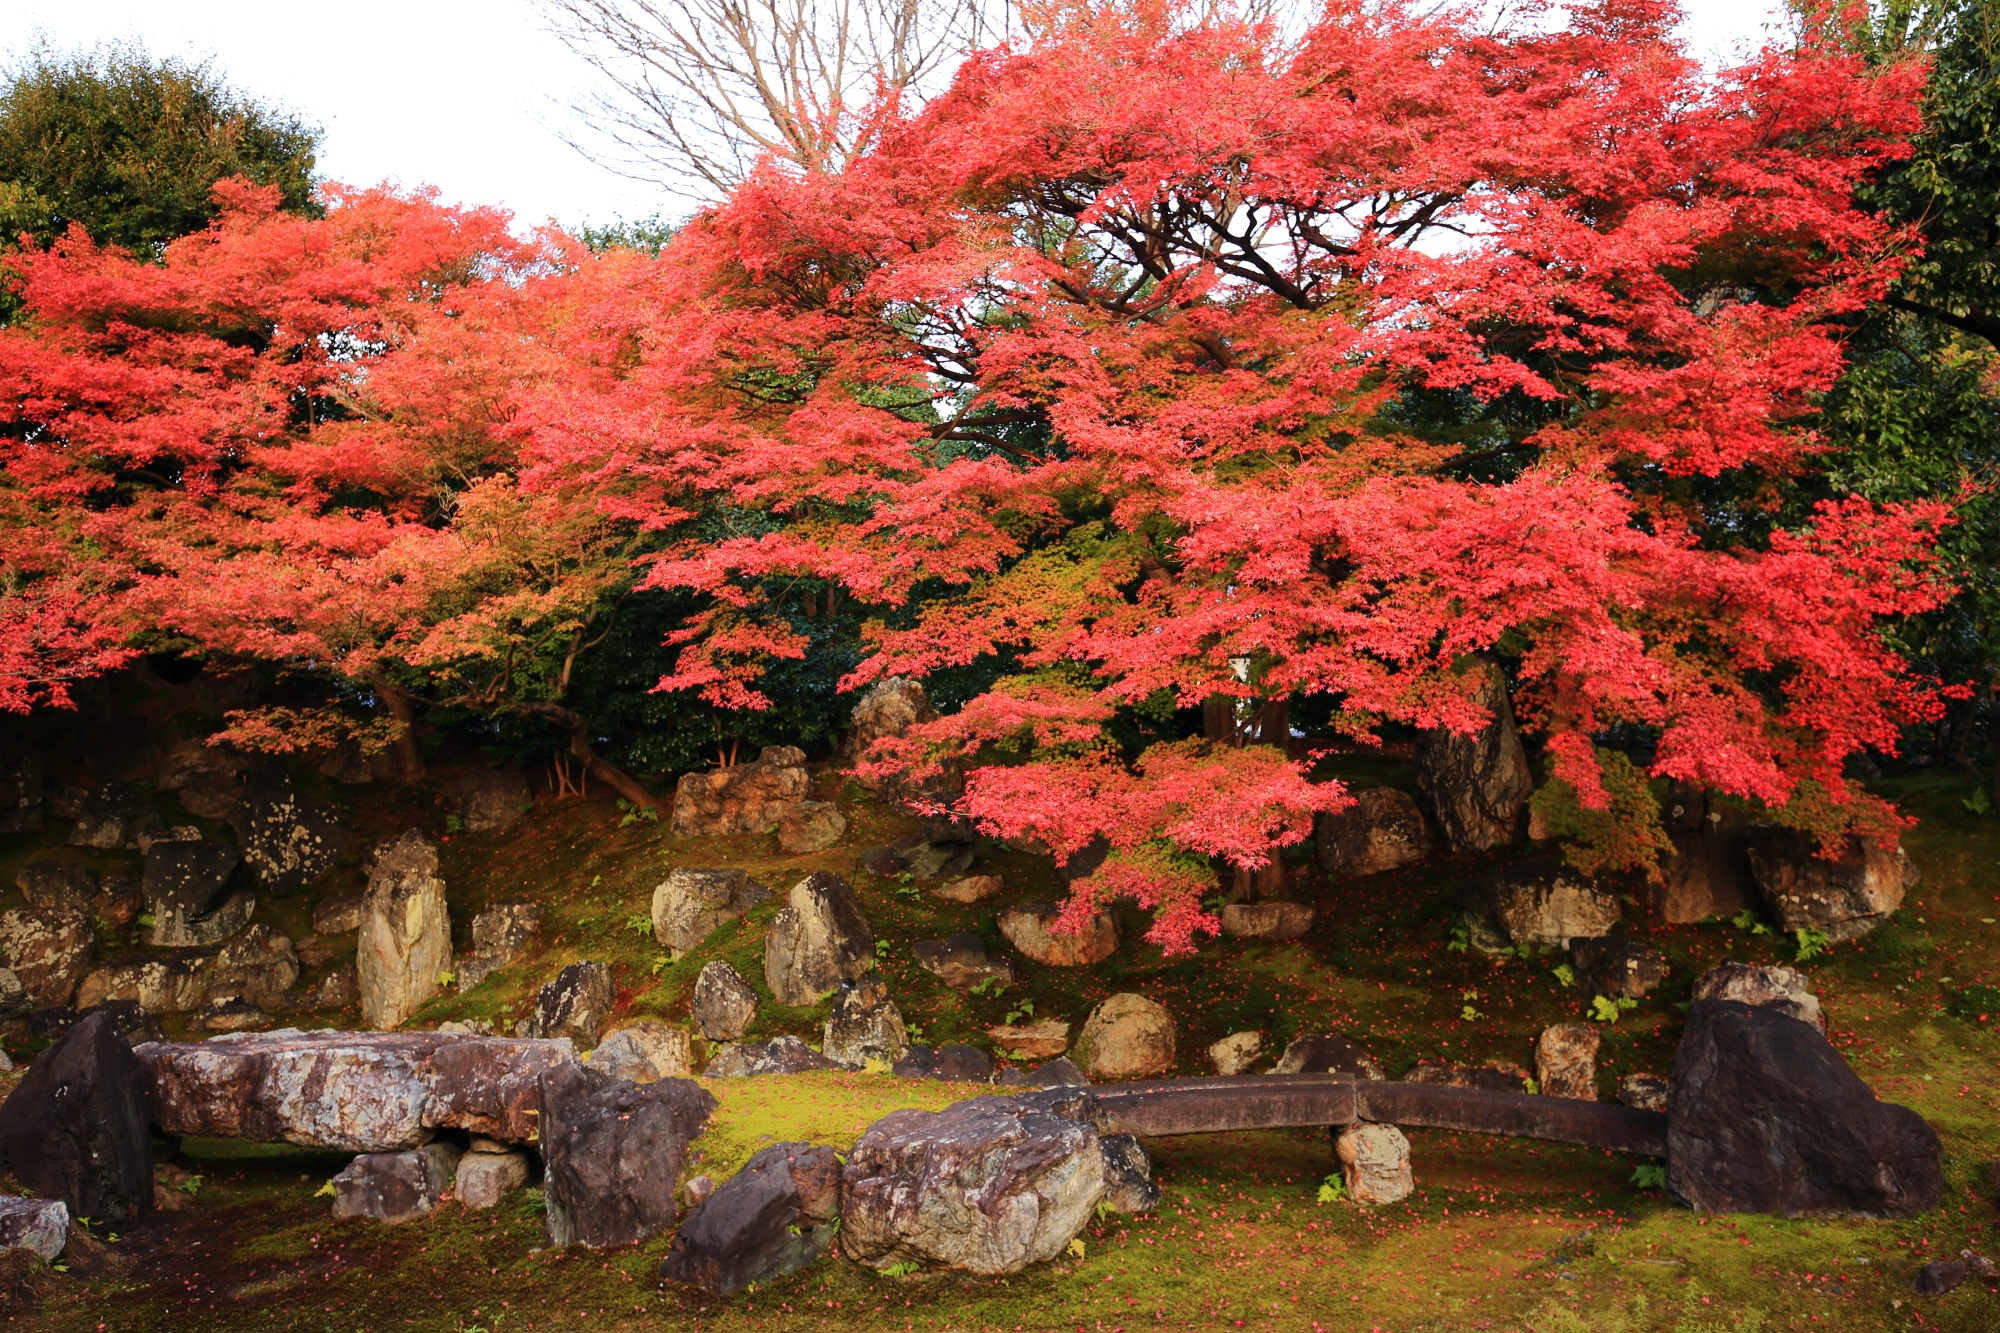 Entoku-in Temple Kyoto autumn leaves 見ごろ 北庭 秋 高台寺